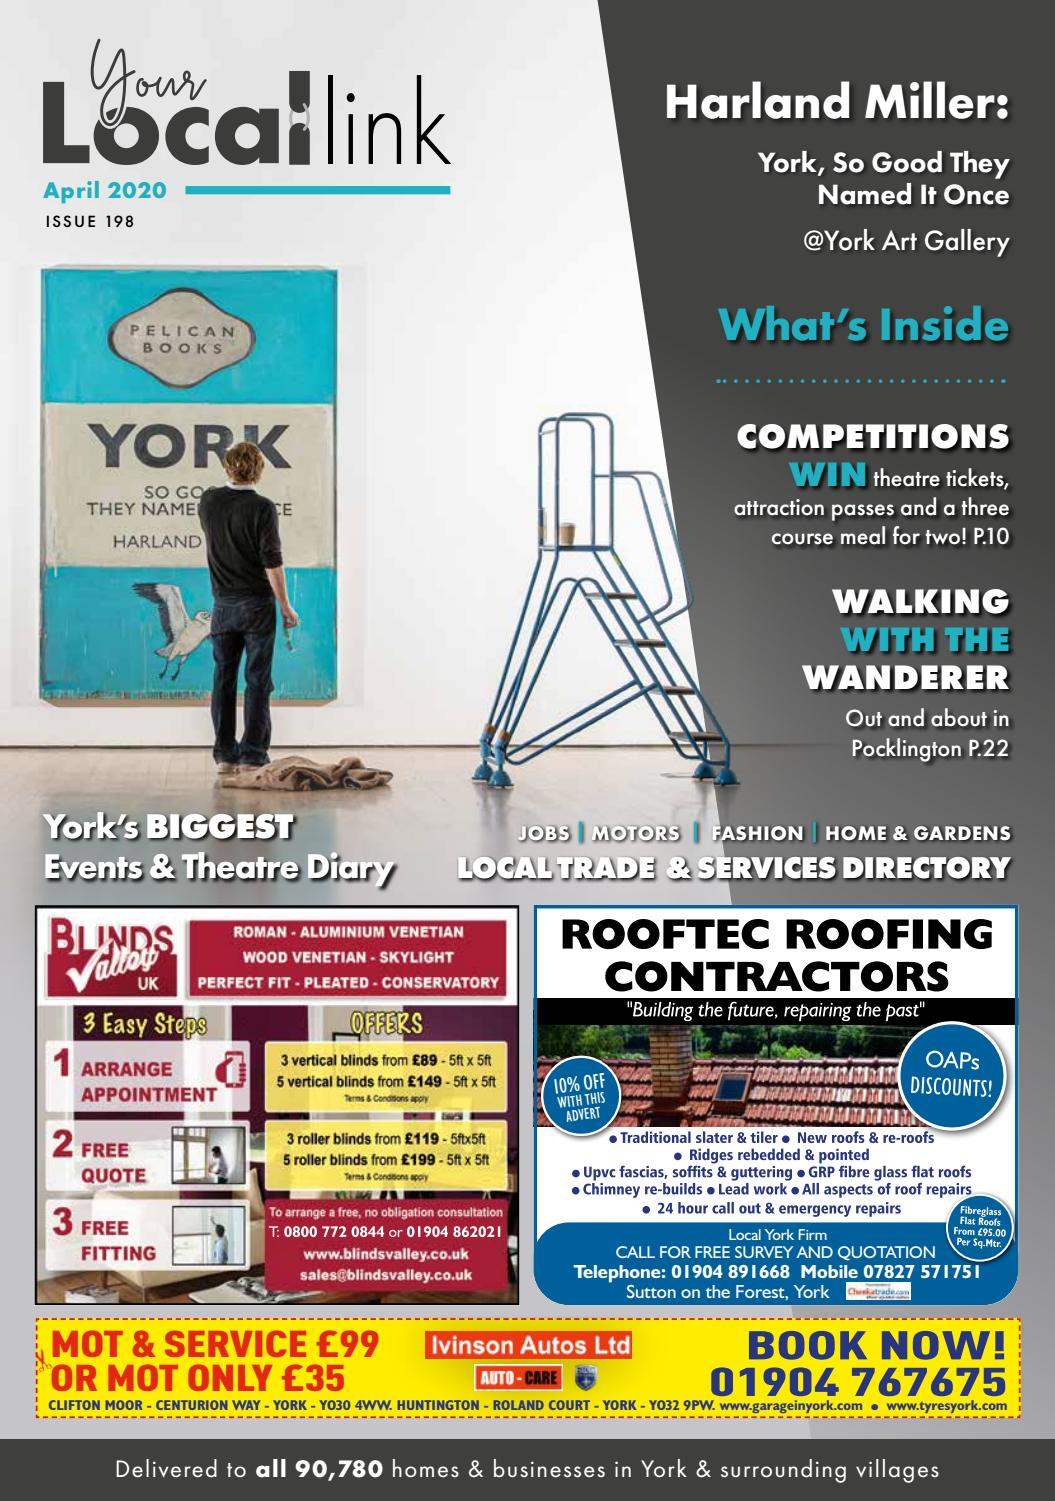 Your Local Link April 2020 By Your Local Link Ltd Issuu